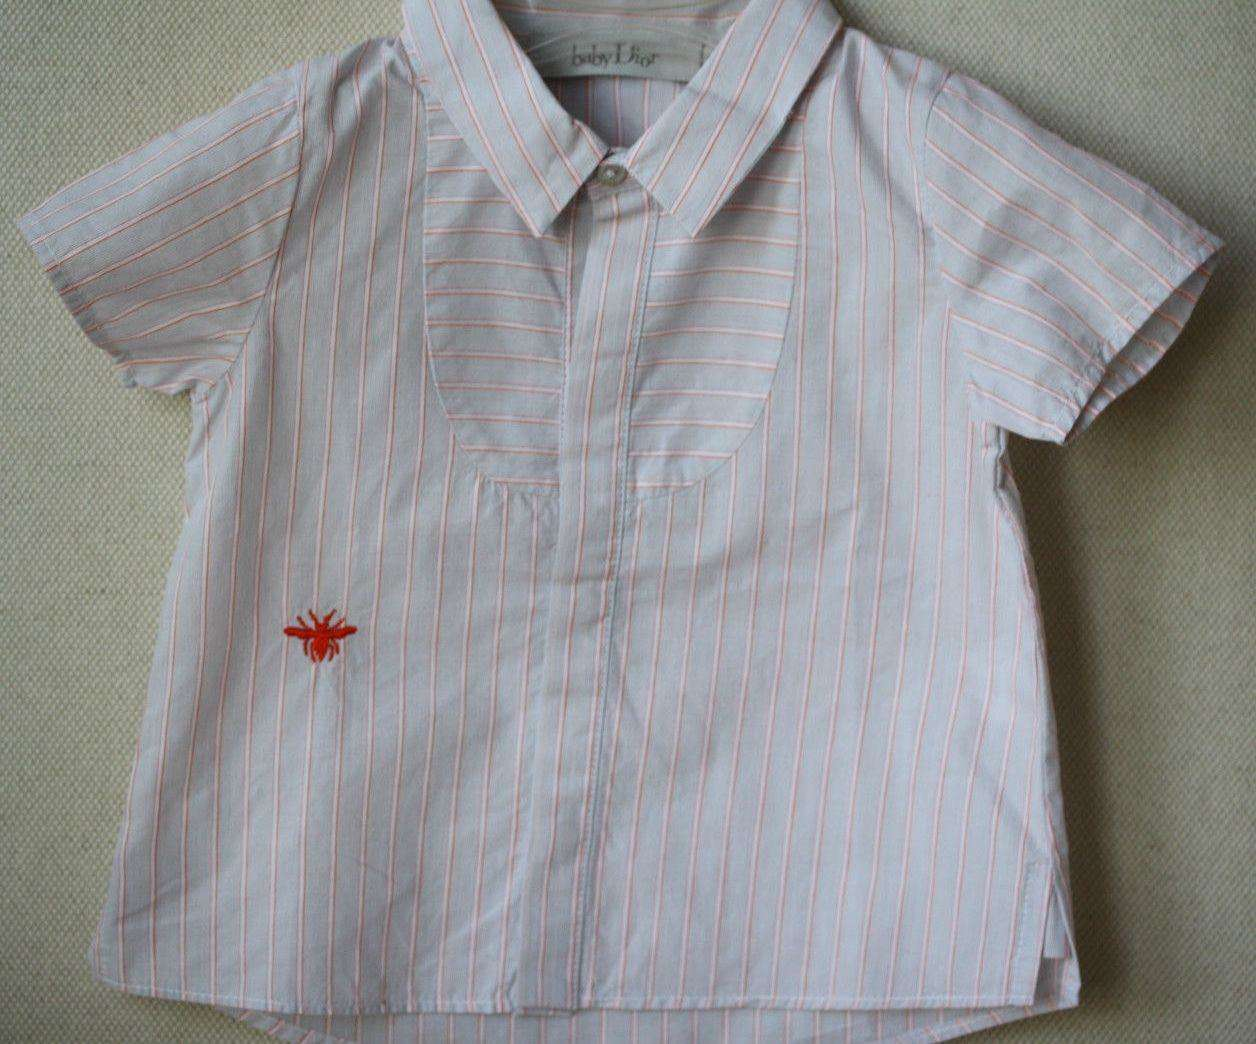 BABY DIOR STRIPED SHIRT 12 MONTHS